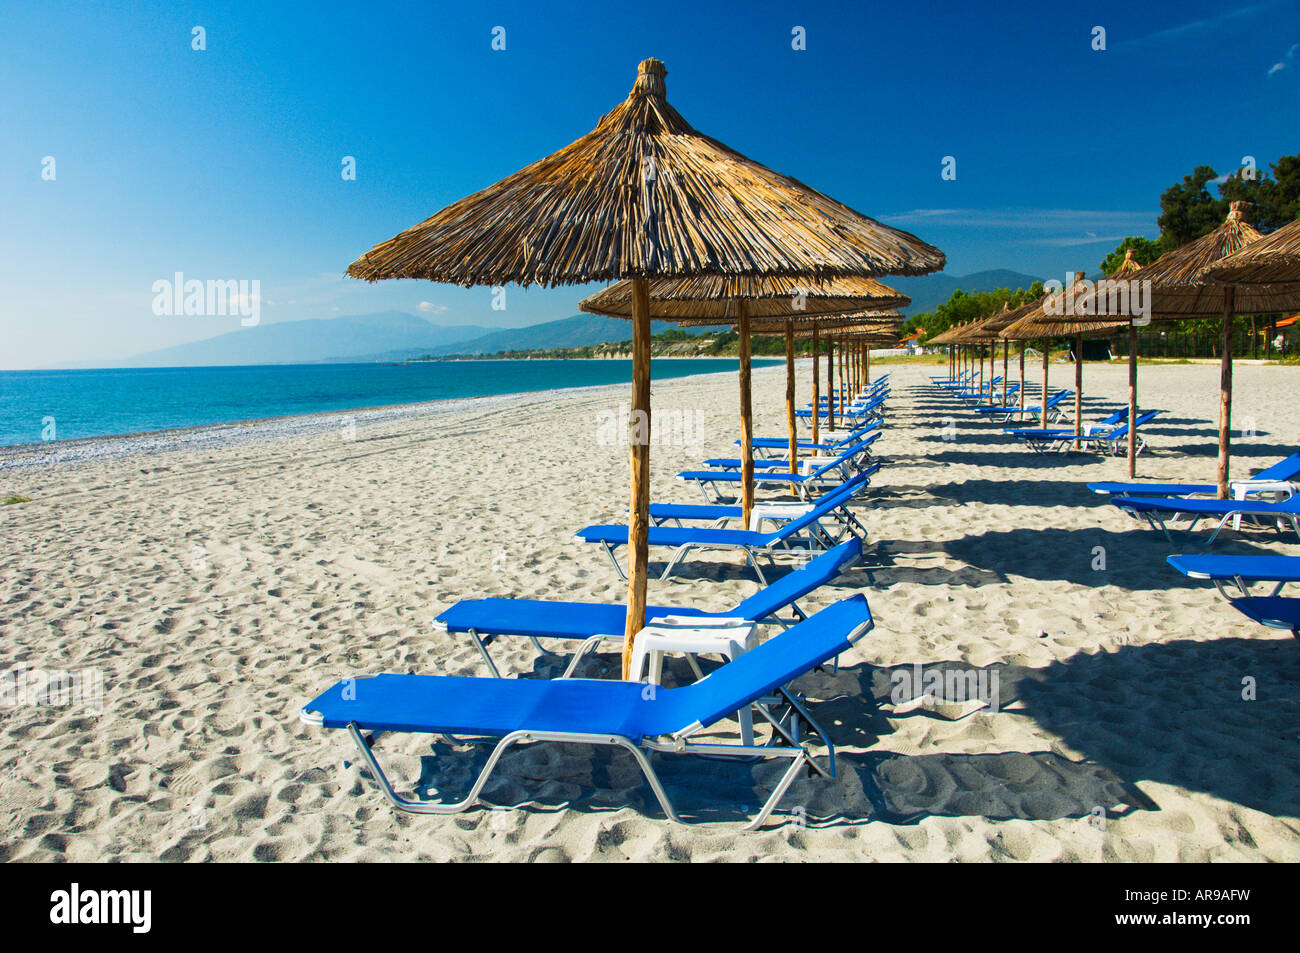 Stock Photo   Thatched Roof Umbrellas And Blue Lounge Chairs On The Beach  At The Dion Palace Resort In Litohor Greece